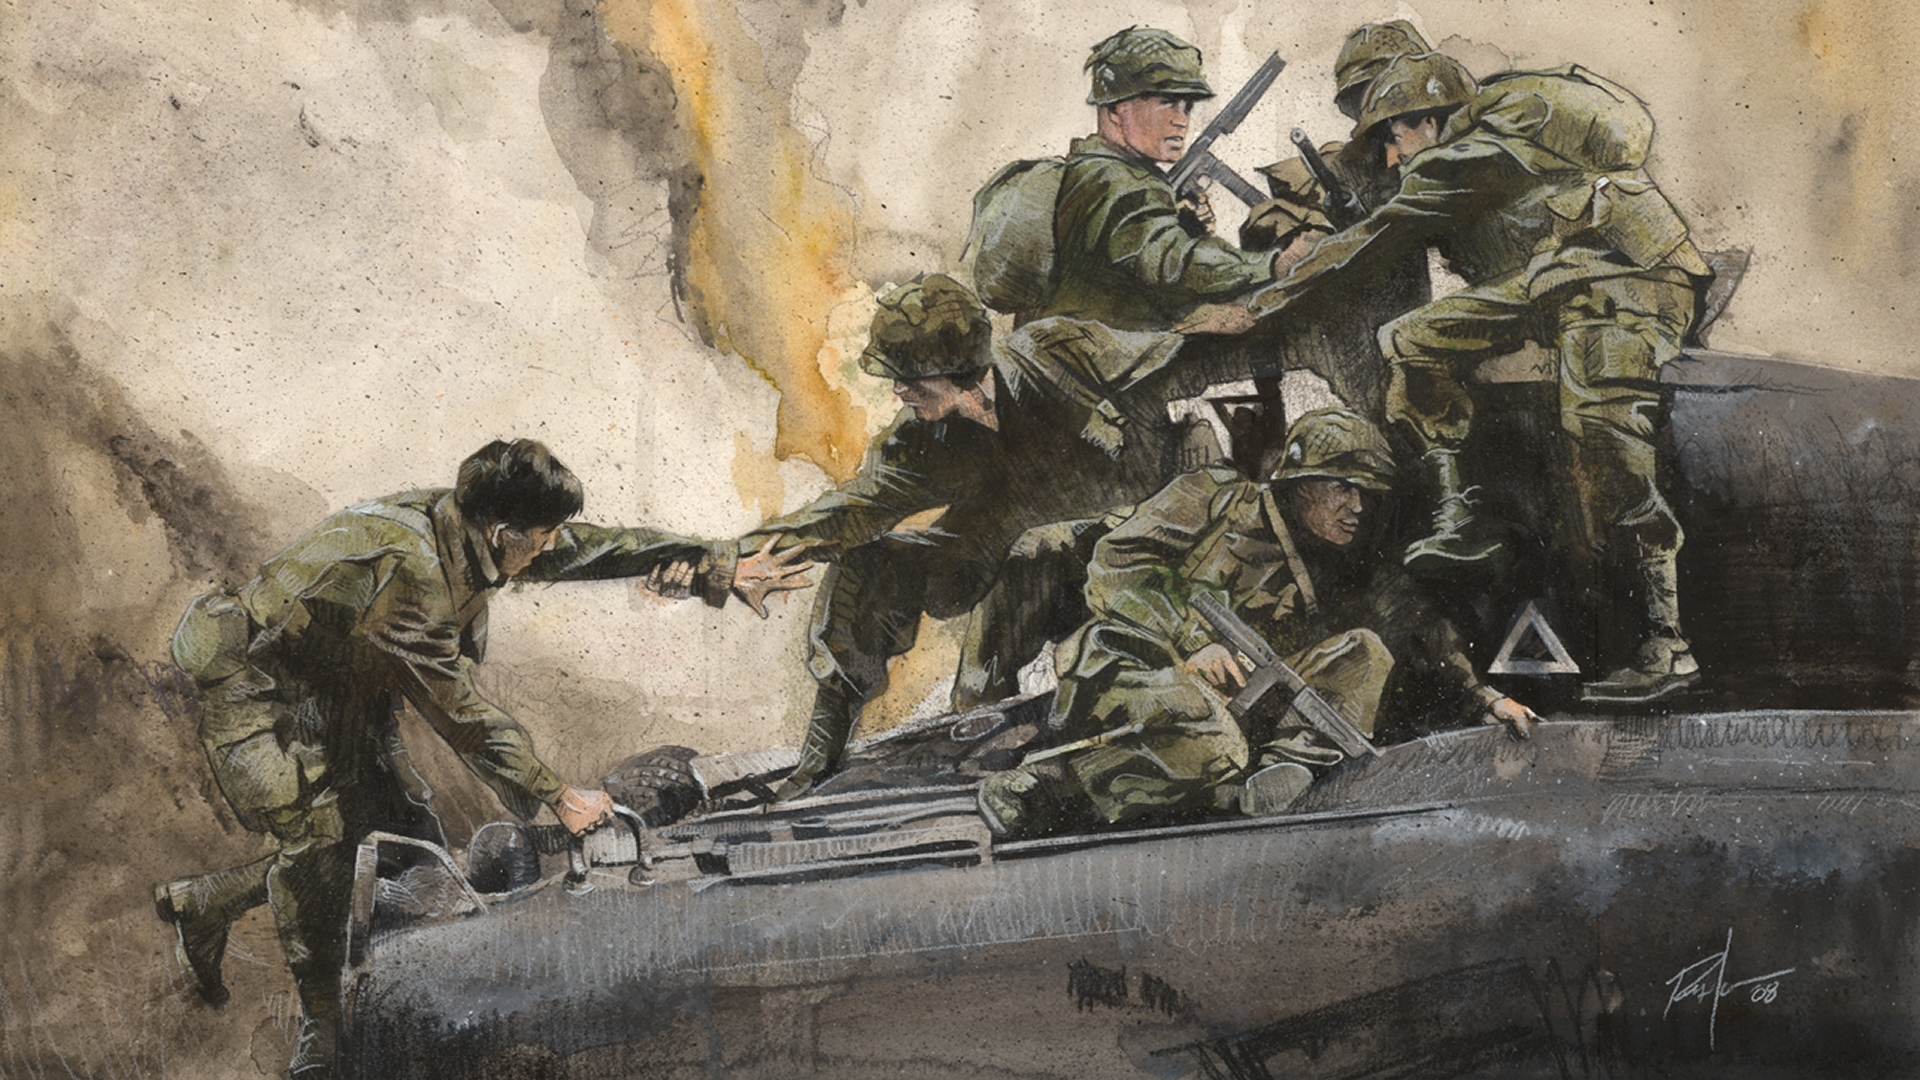 soldiers paintings War HD Wallpaper